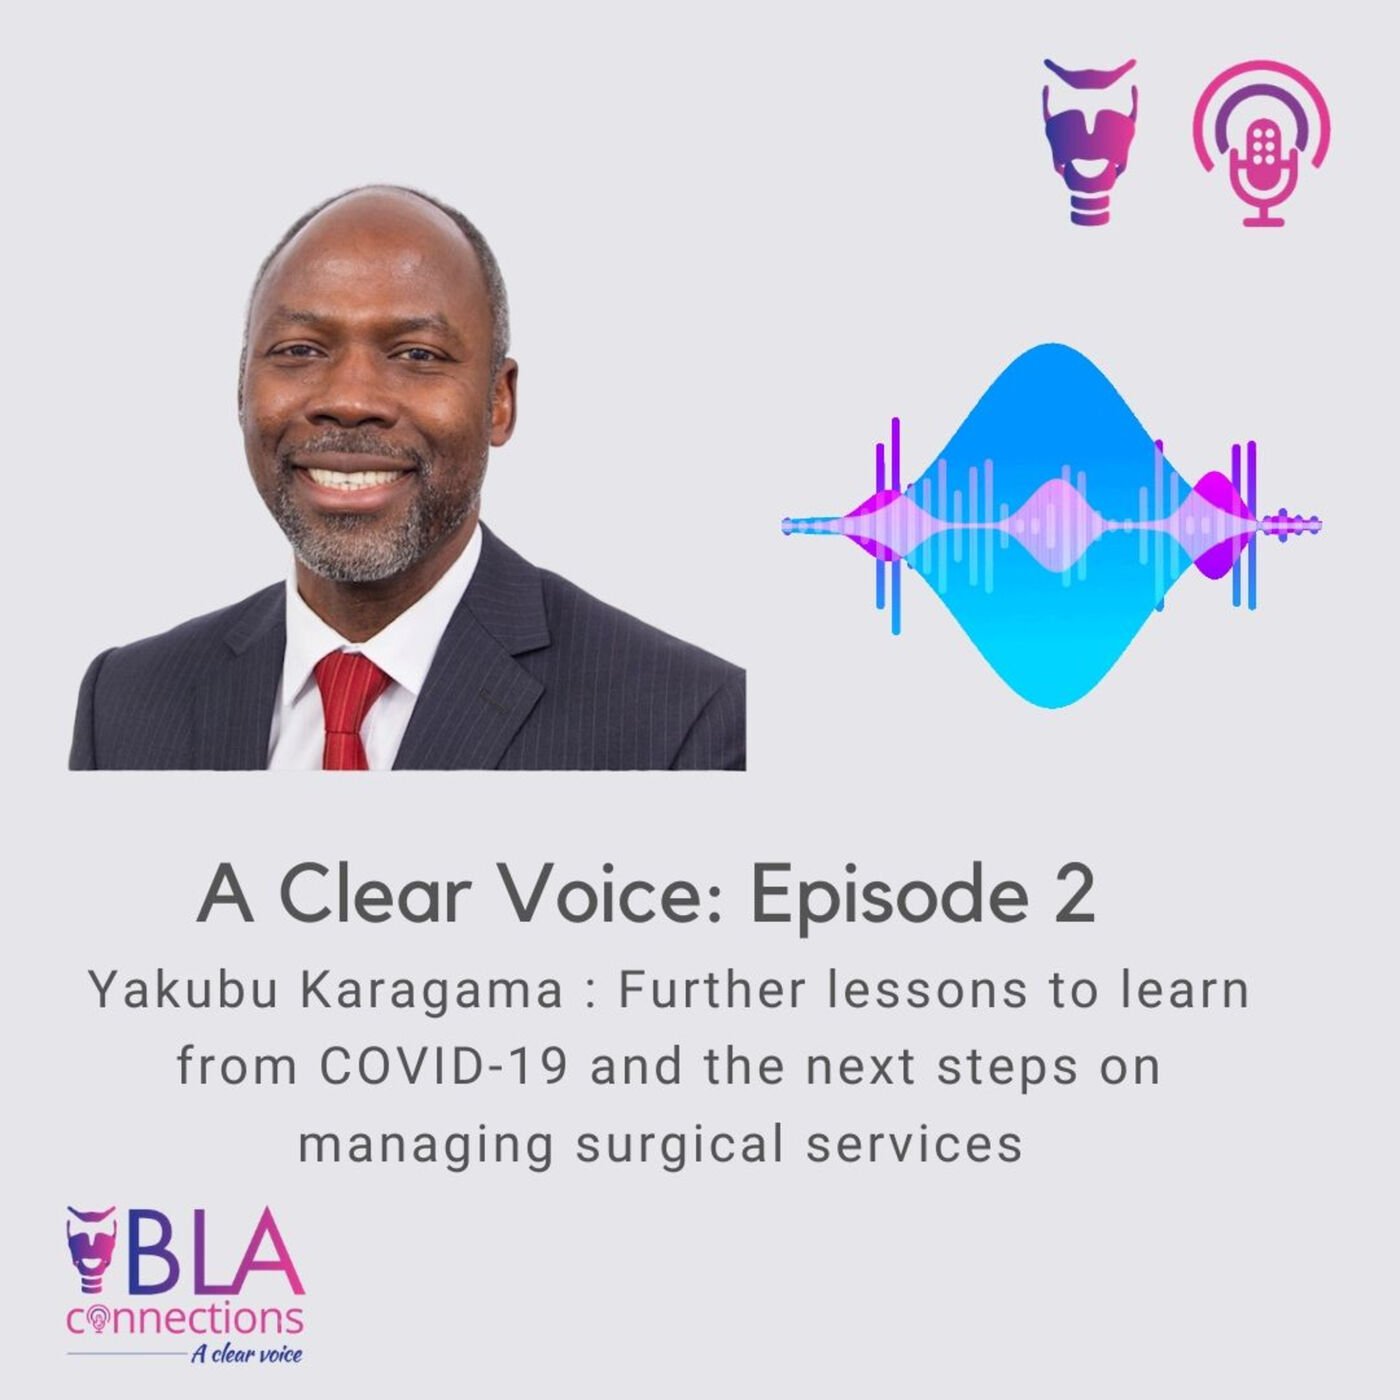 S1 Ep 2: Yakubu Karagama on further lessons learned from COVID-19 and the next steps on managing surgical services